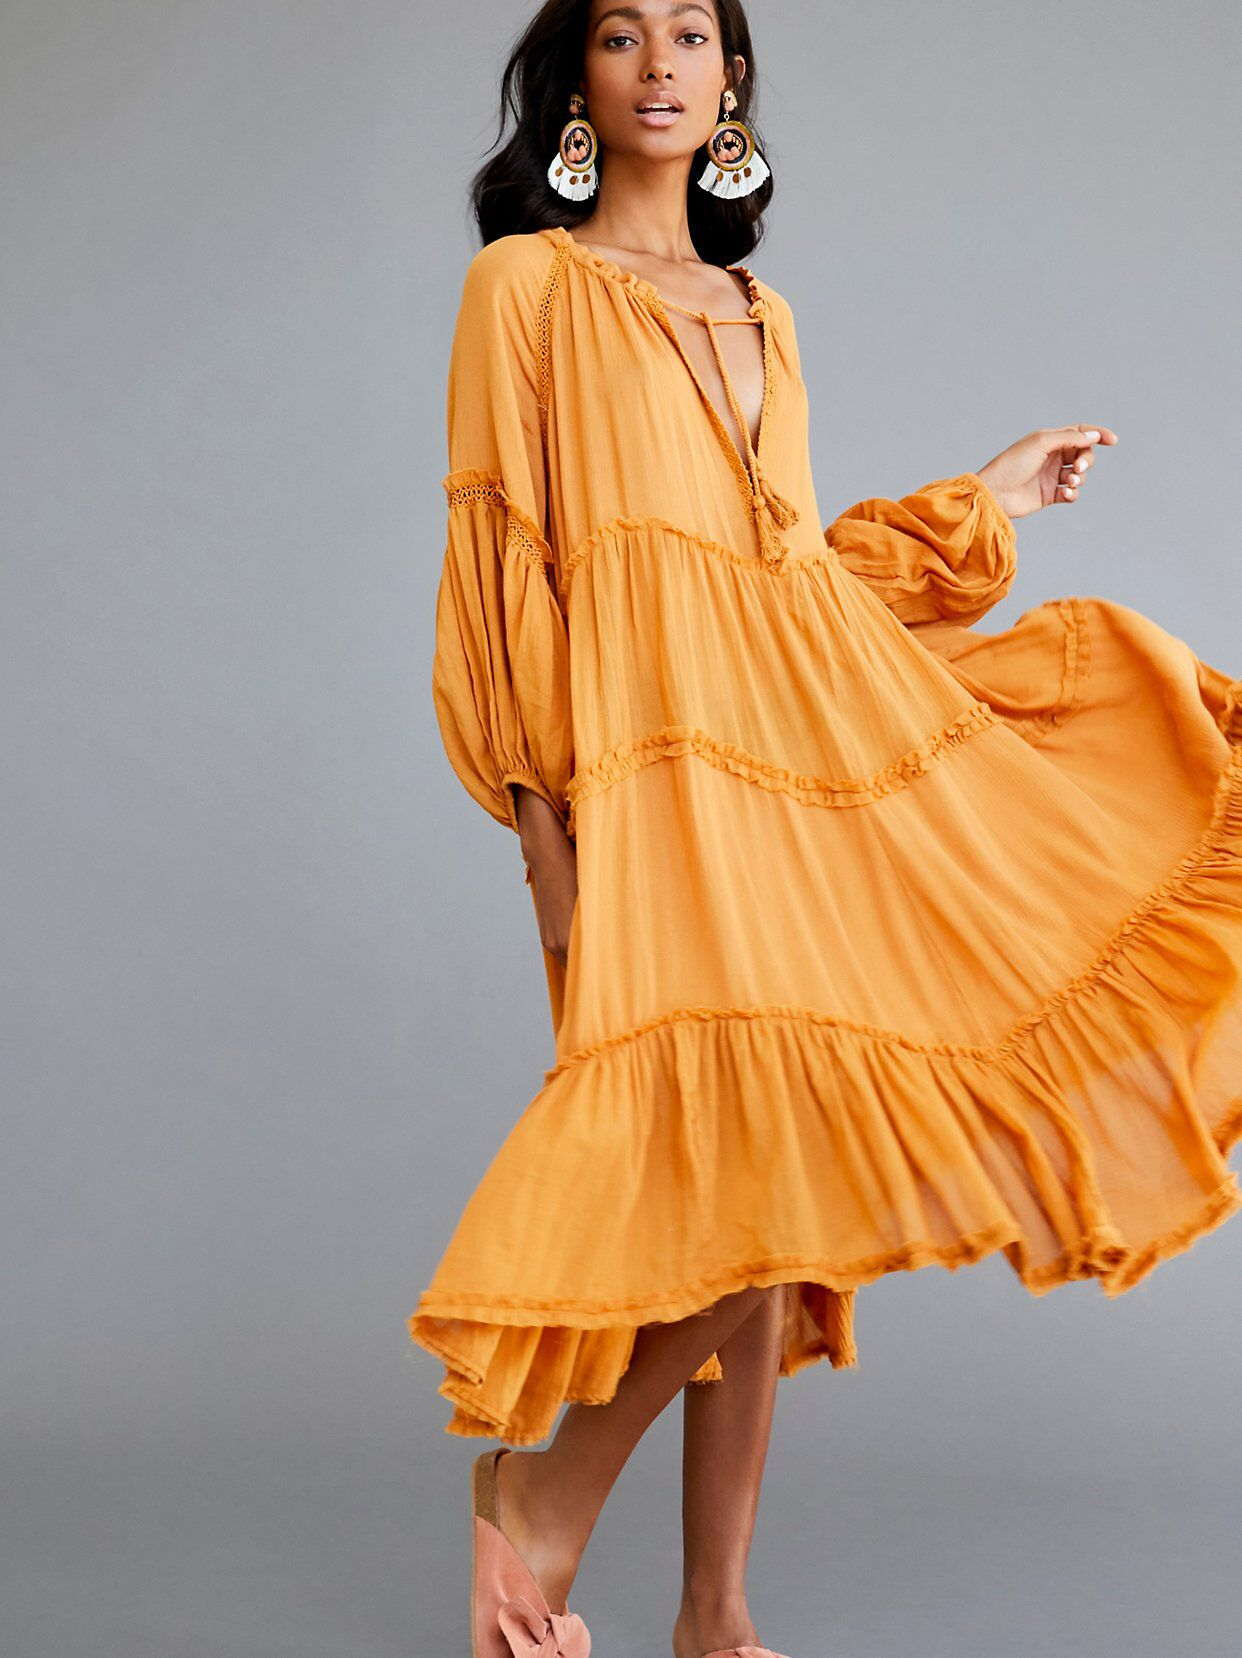 37034b6cec2 The Endless Summer In The Moment Dress in 2019